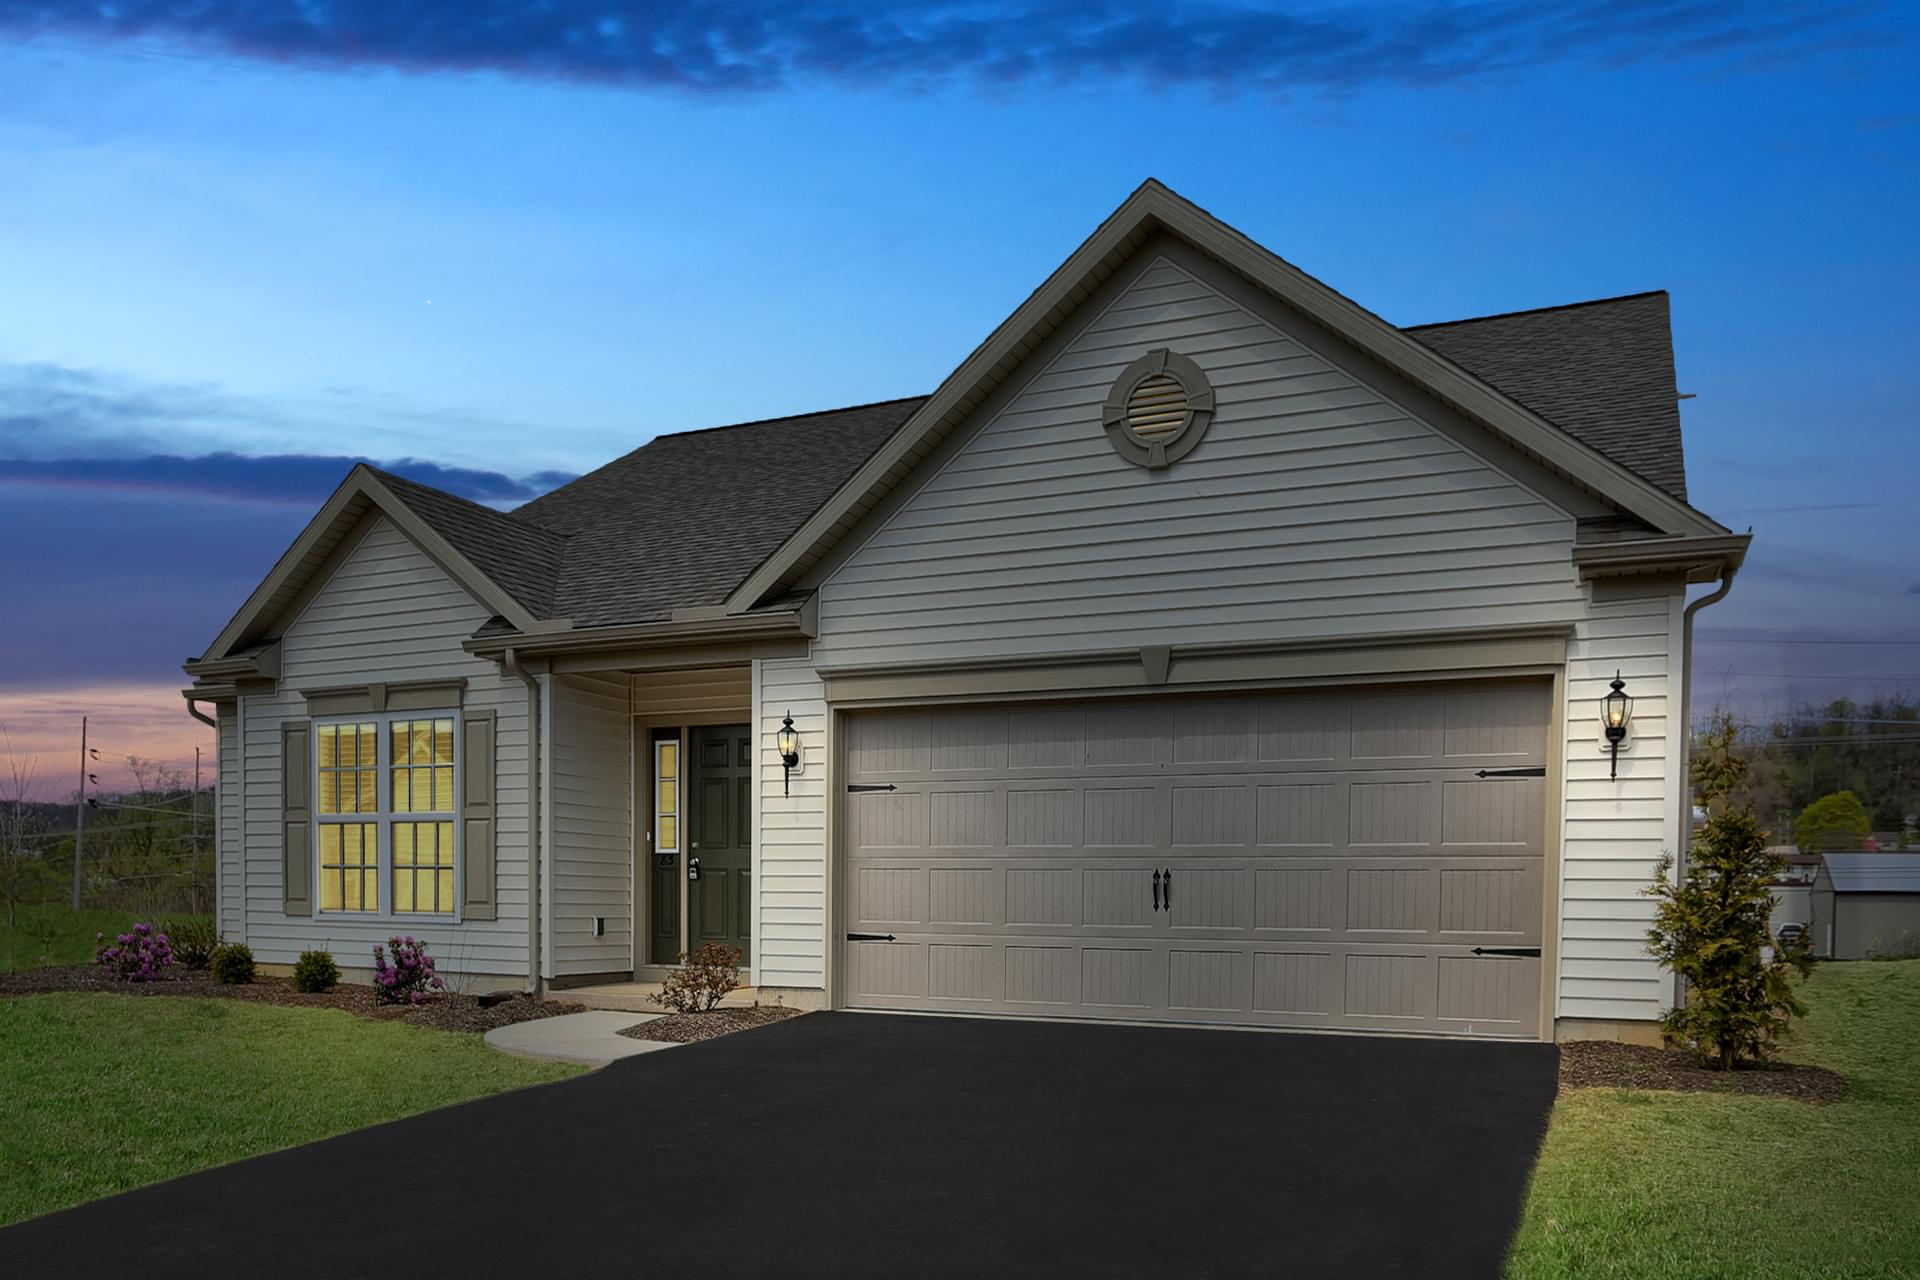 Blossom Hill New Homes in Lewistown, PA